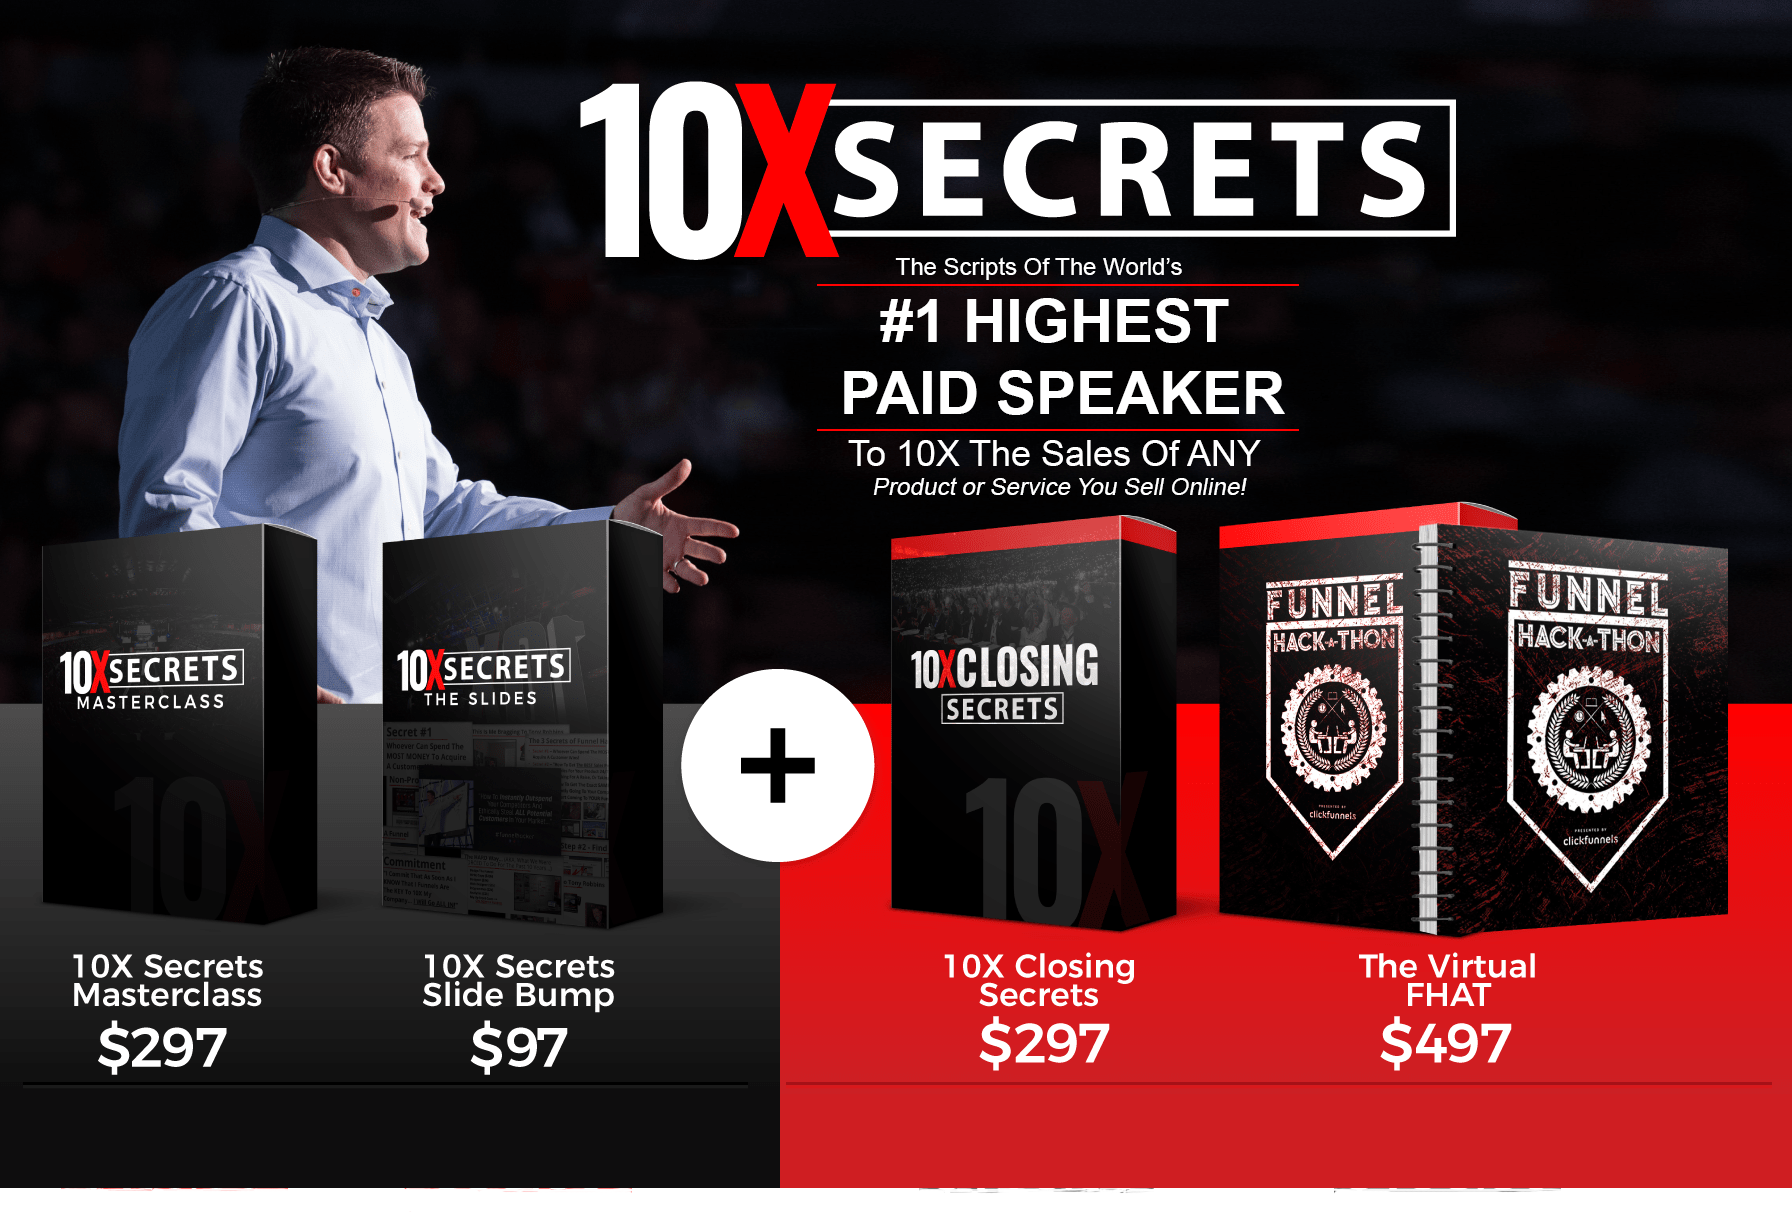 10X secrets masterclass review russell brunson - pricing